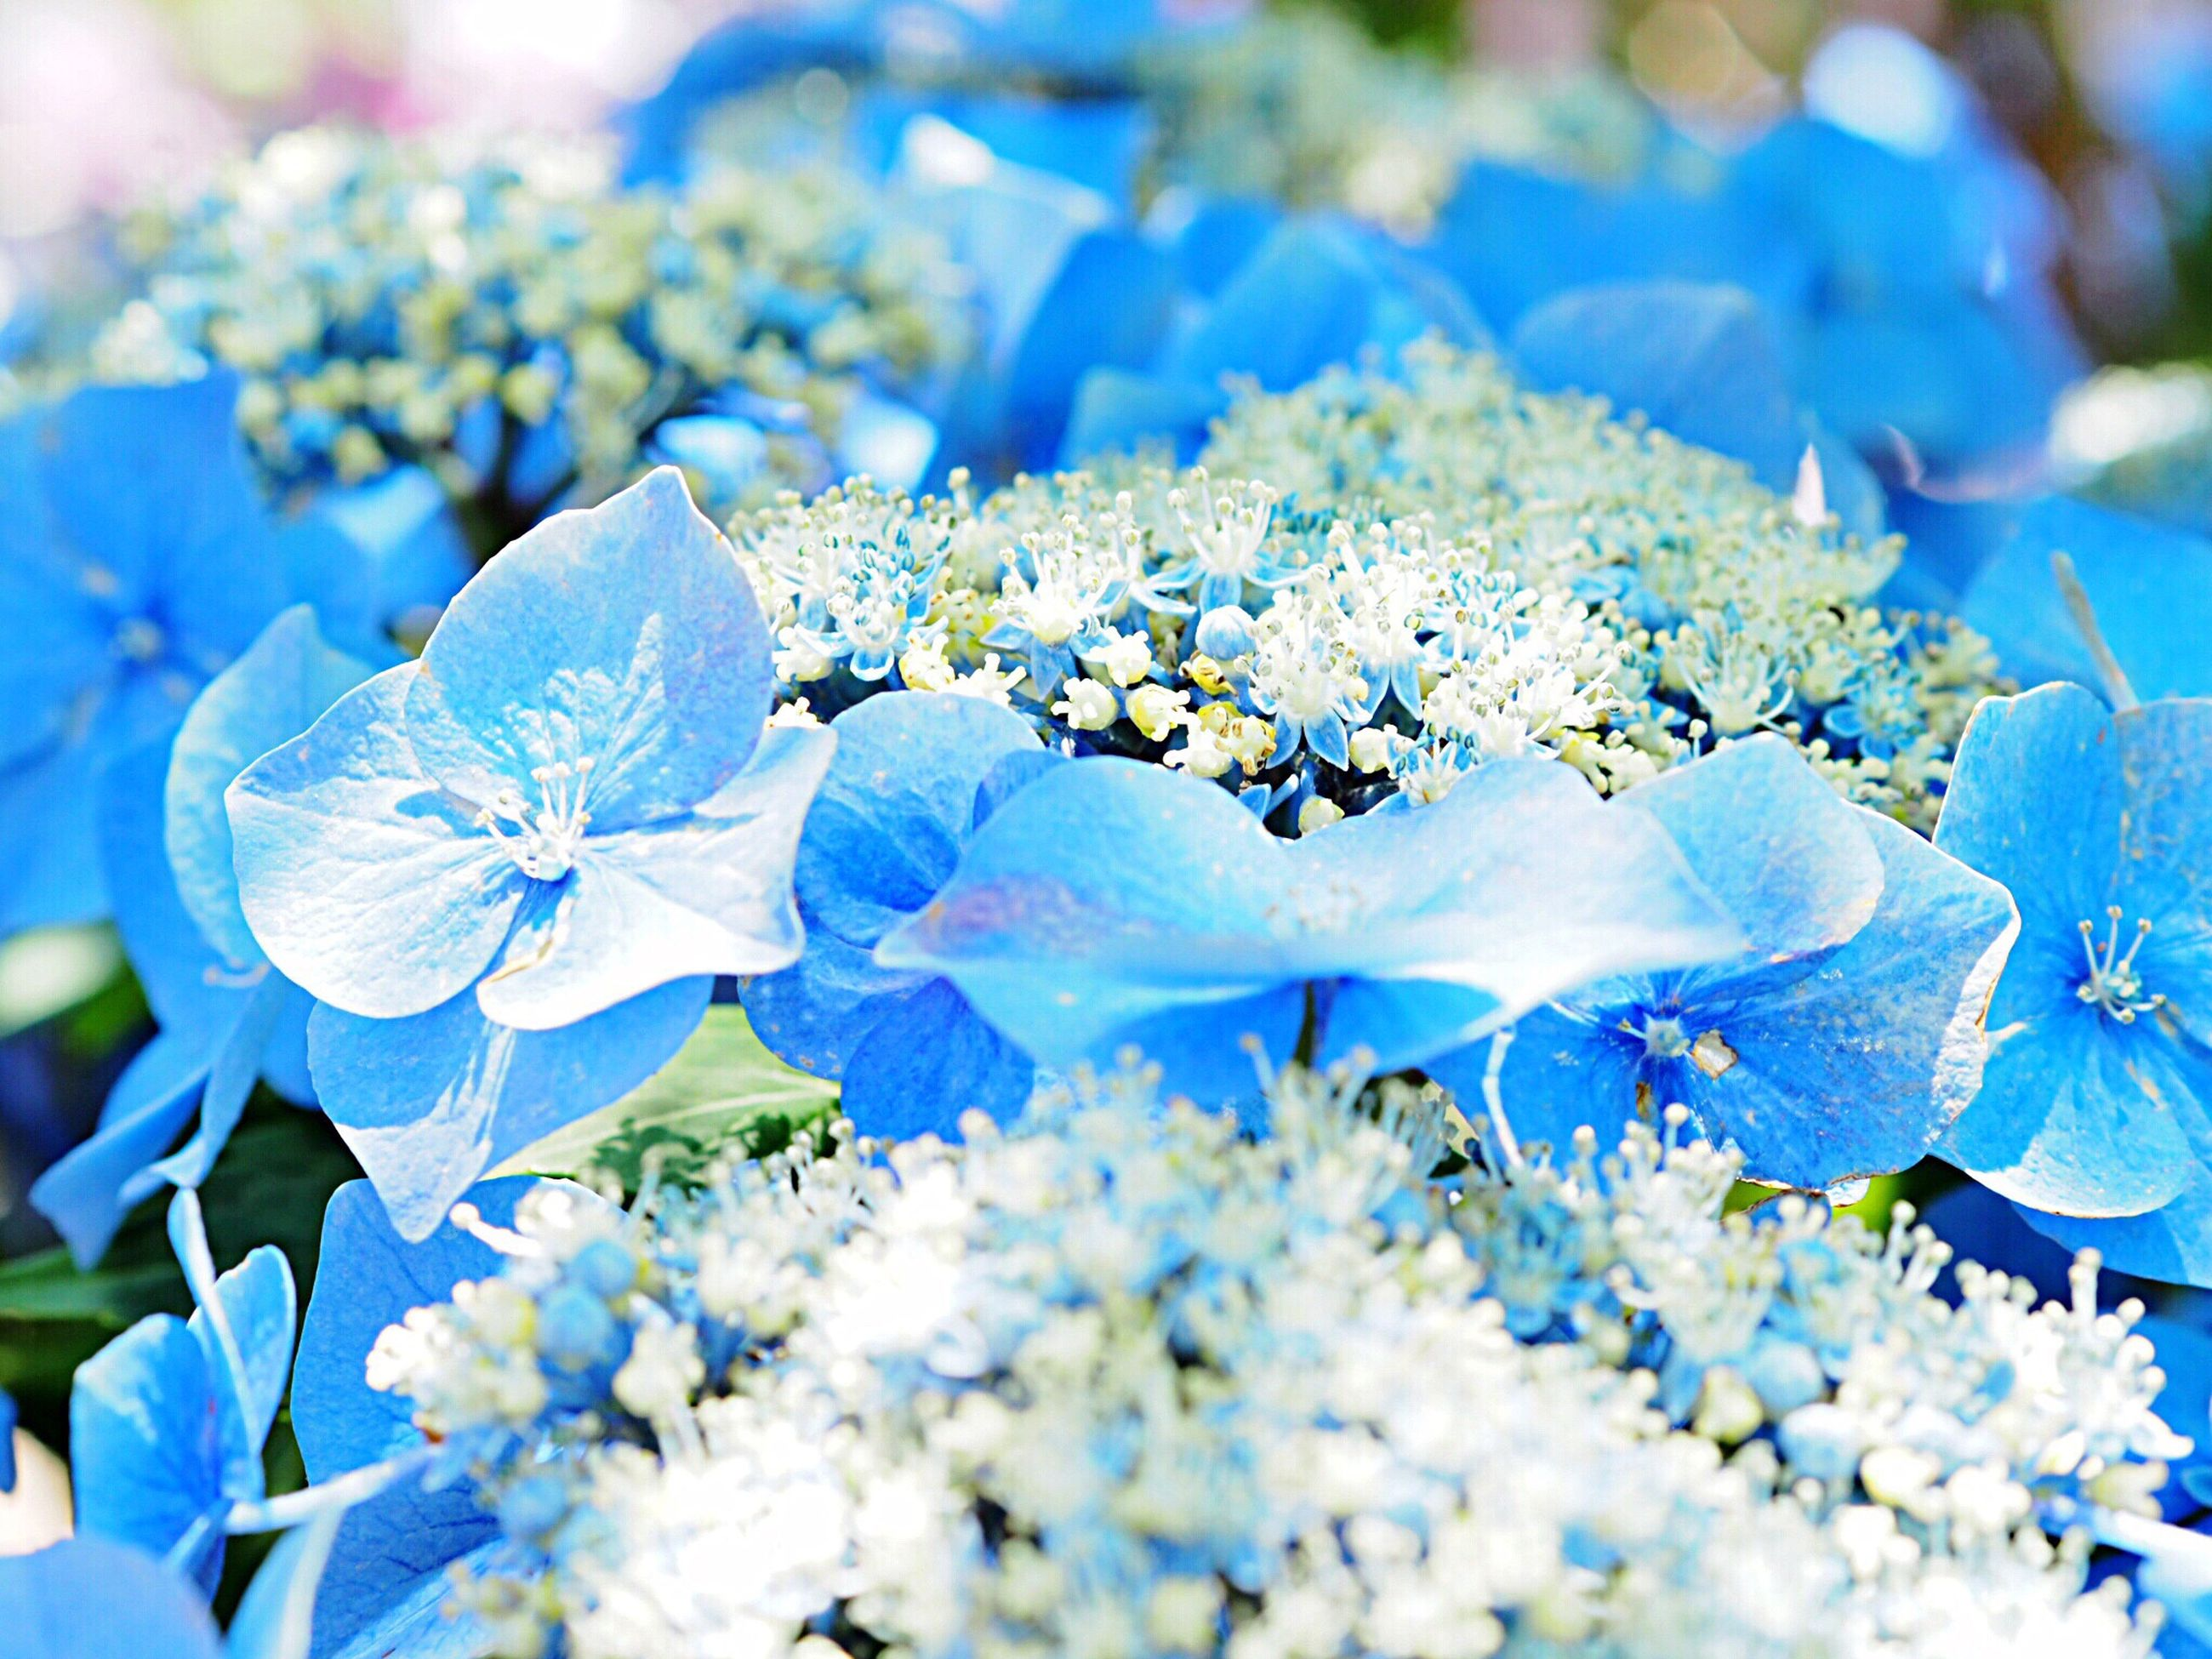 flower, blue, beauty in nature, nature, fragility, growth, petal, no people, hydrangea, blooming, outdoors, plant, close-up, day, freshness, flower head